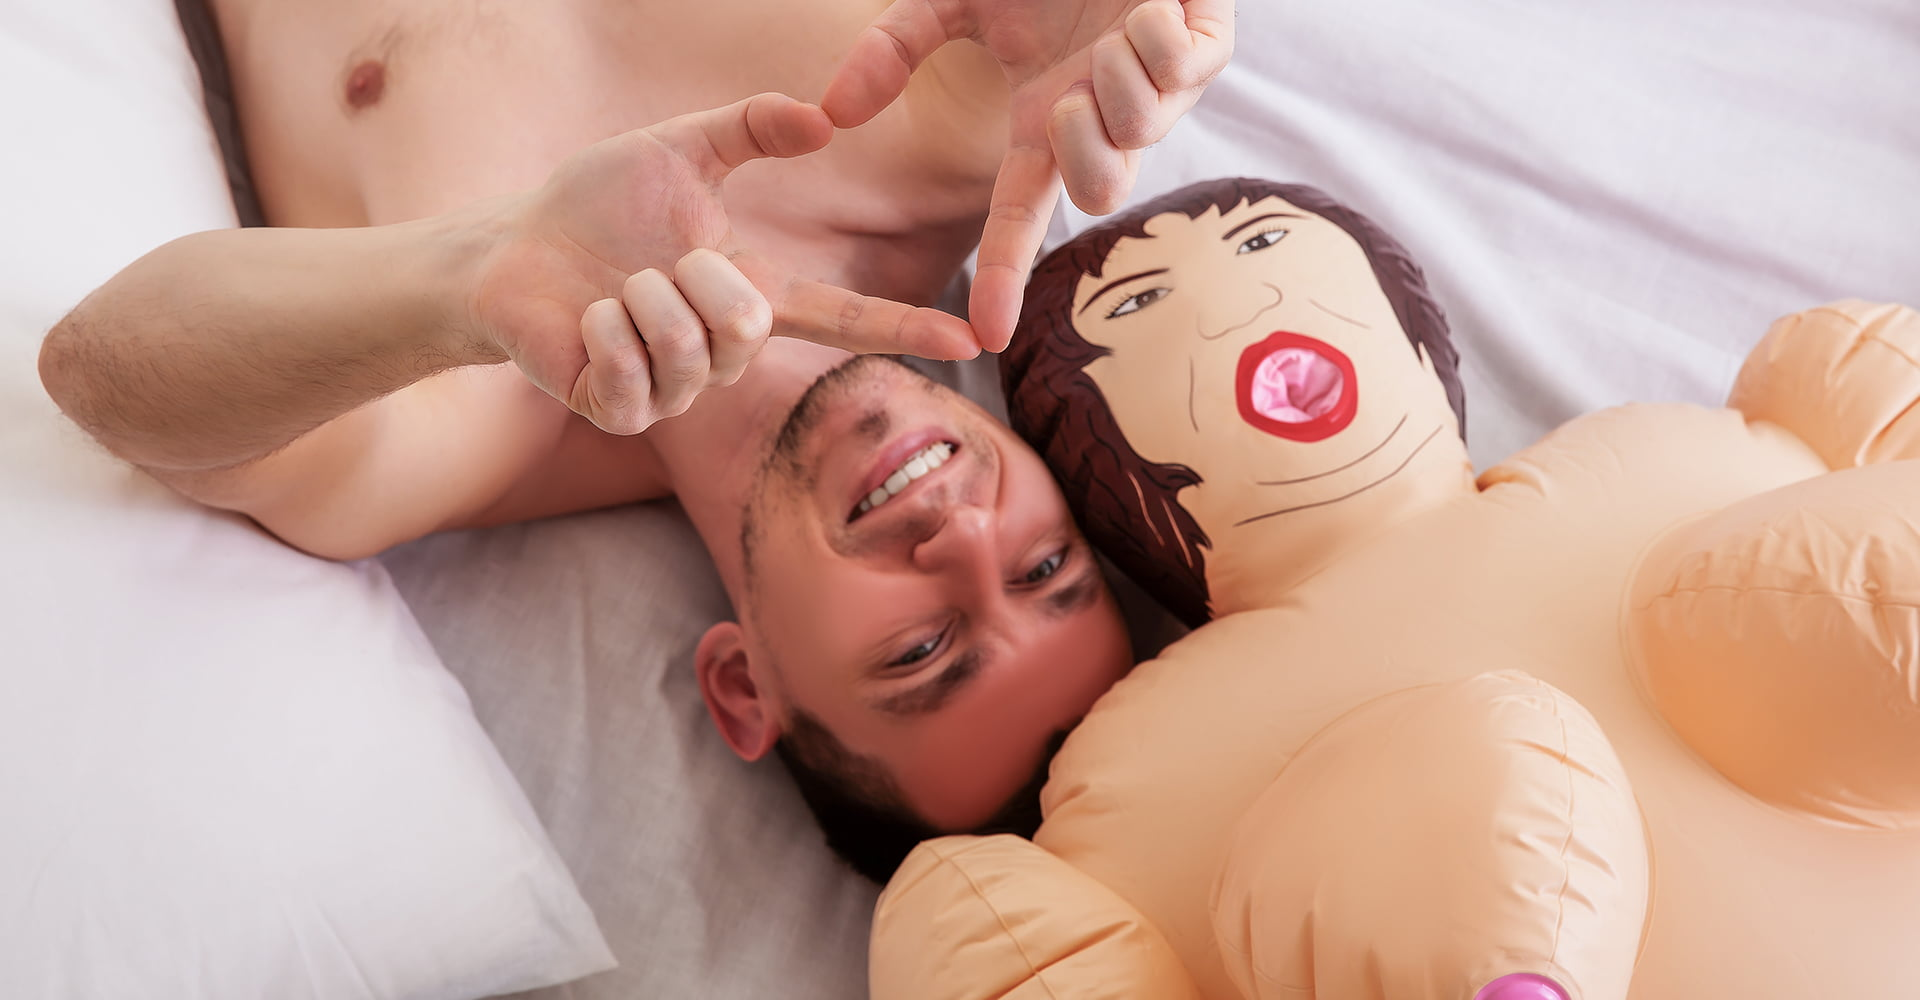 male-sex-toy